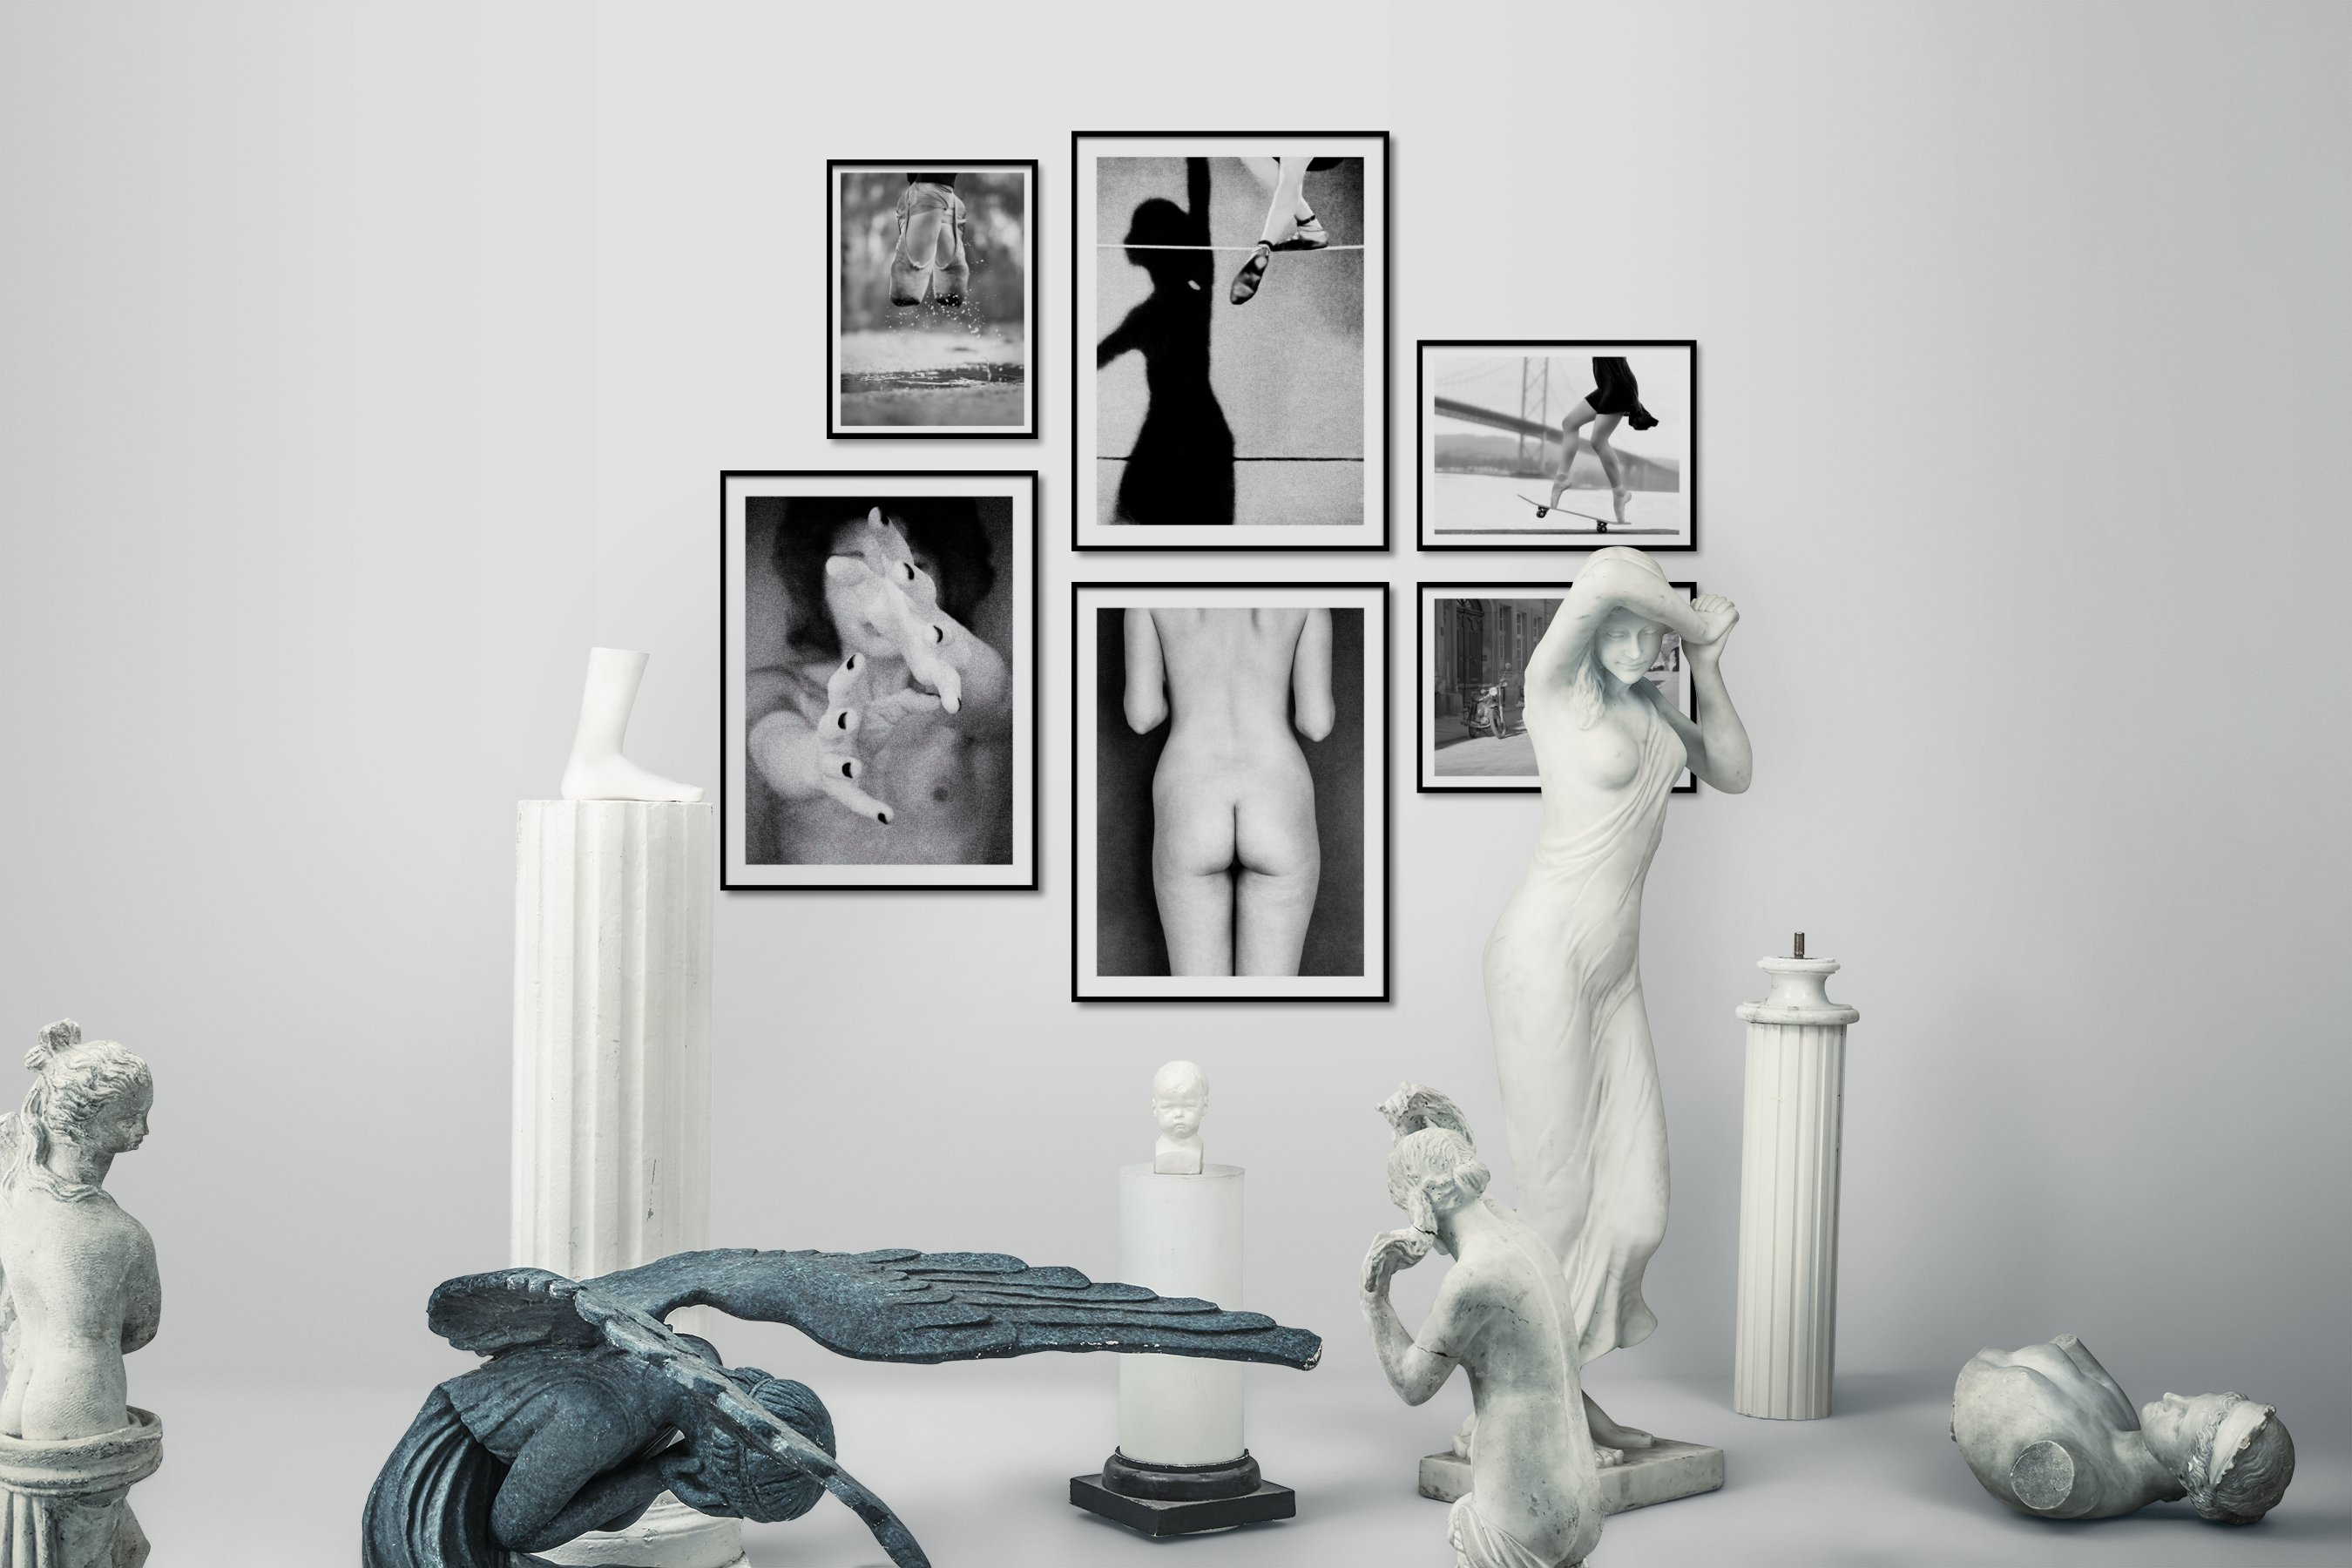 Gallery wall idea with six framed pictures arranged on a wall depicting Fashion & Beauty, Black & White, For the Moderate, City Life, and Vintage